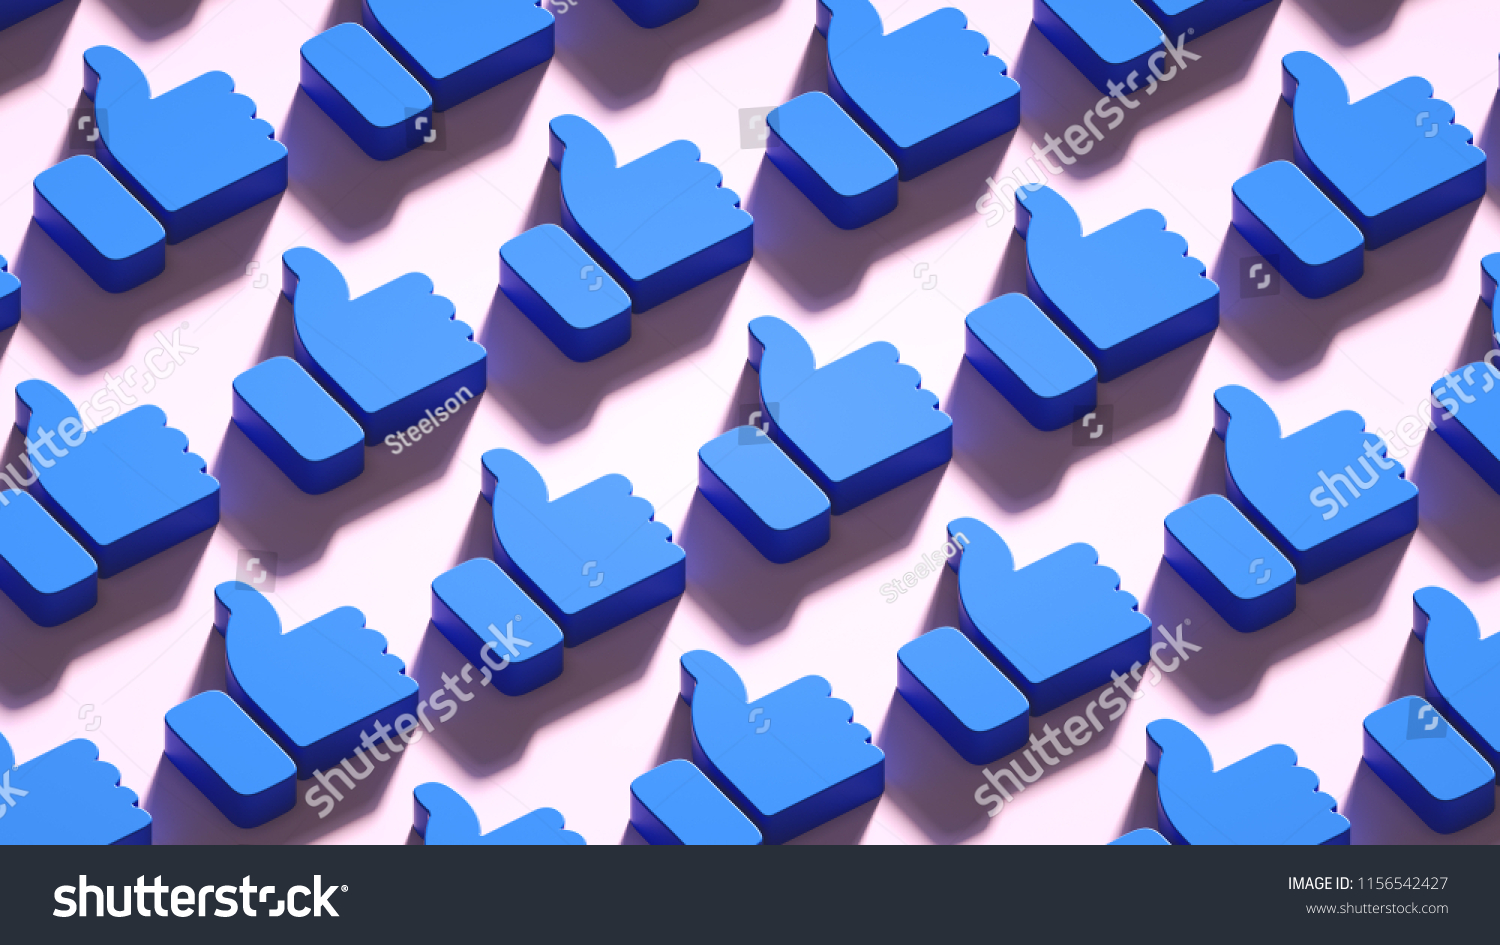 tbilisi georgia 15 august 2018 tumbs stock illustration 1156542427